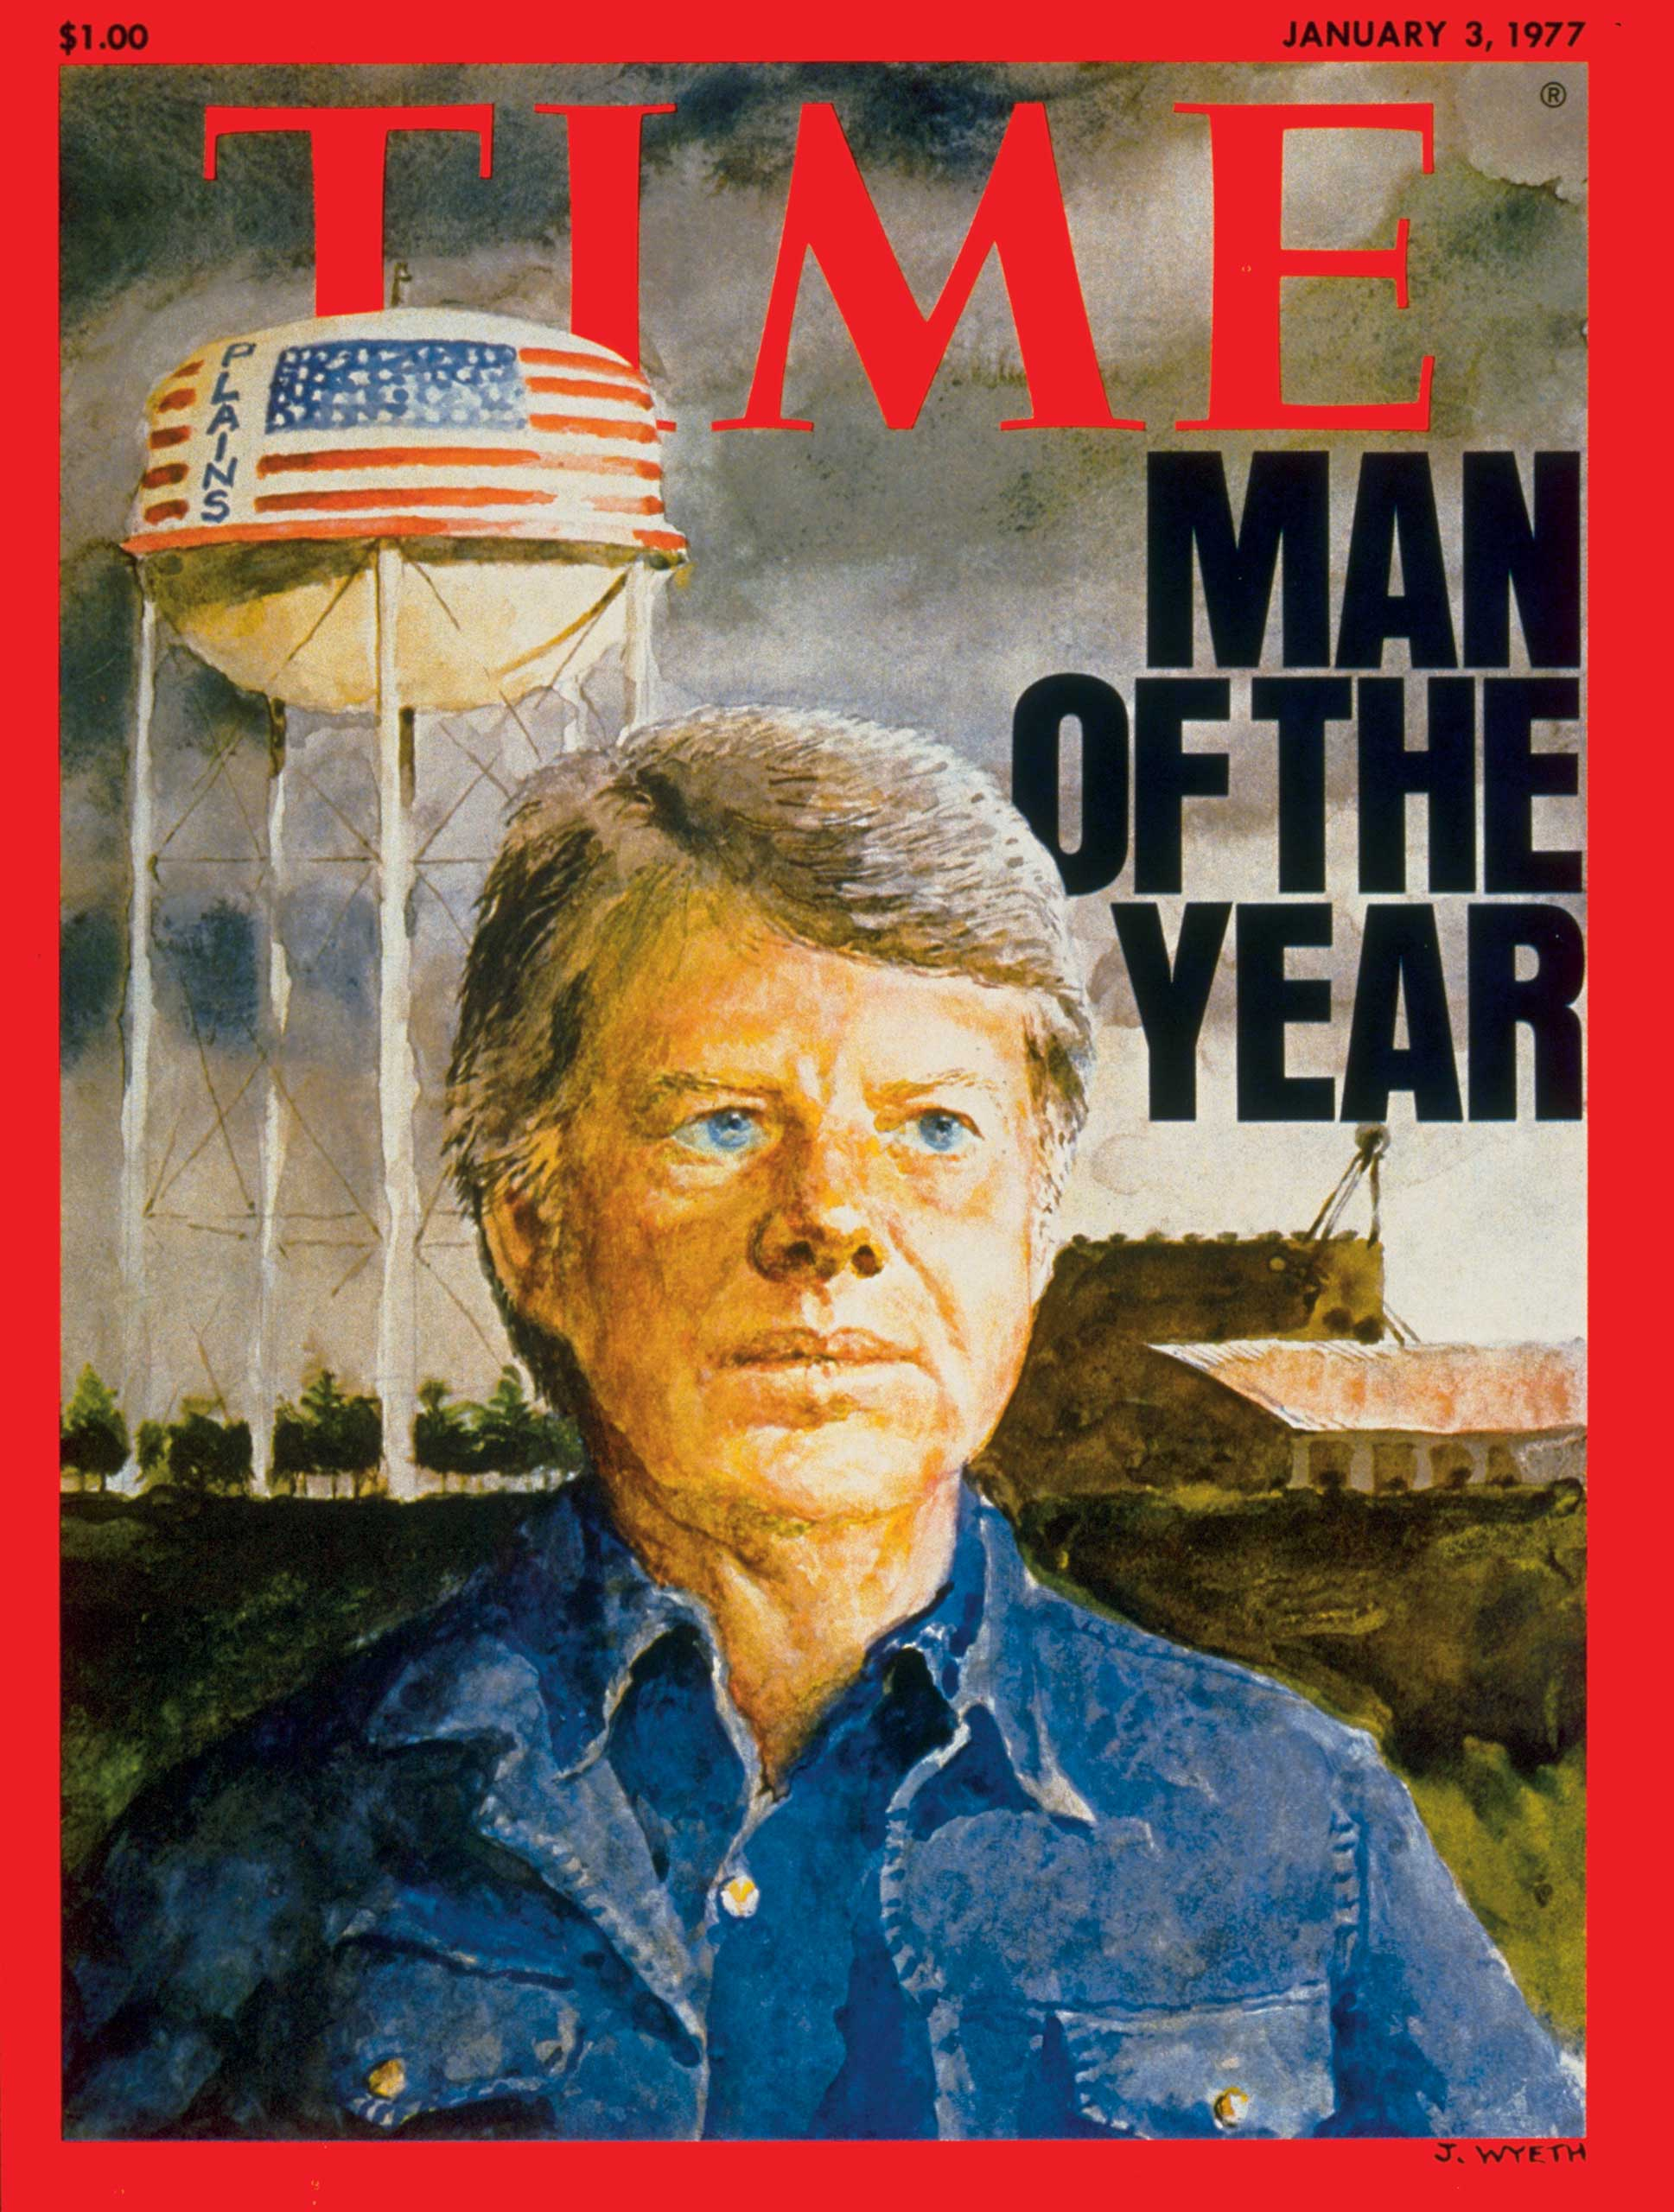 1976: President Jimmy Carter